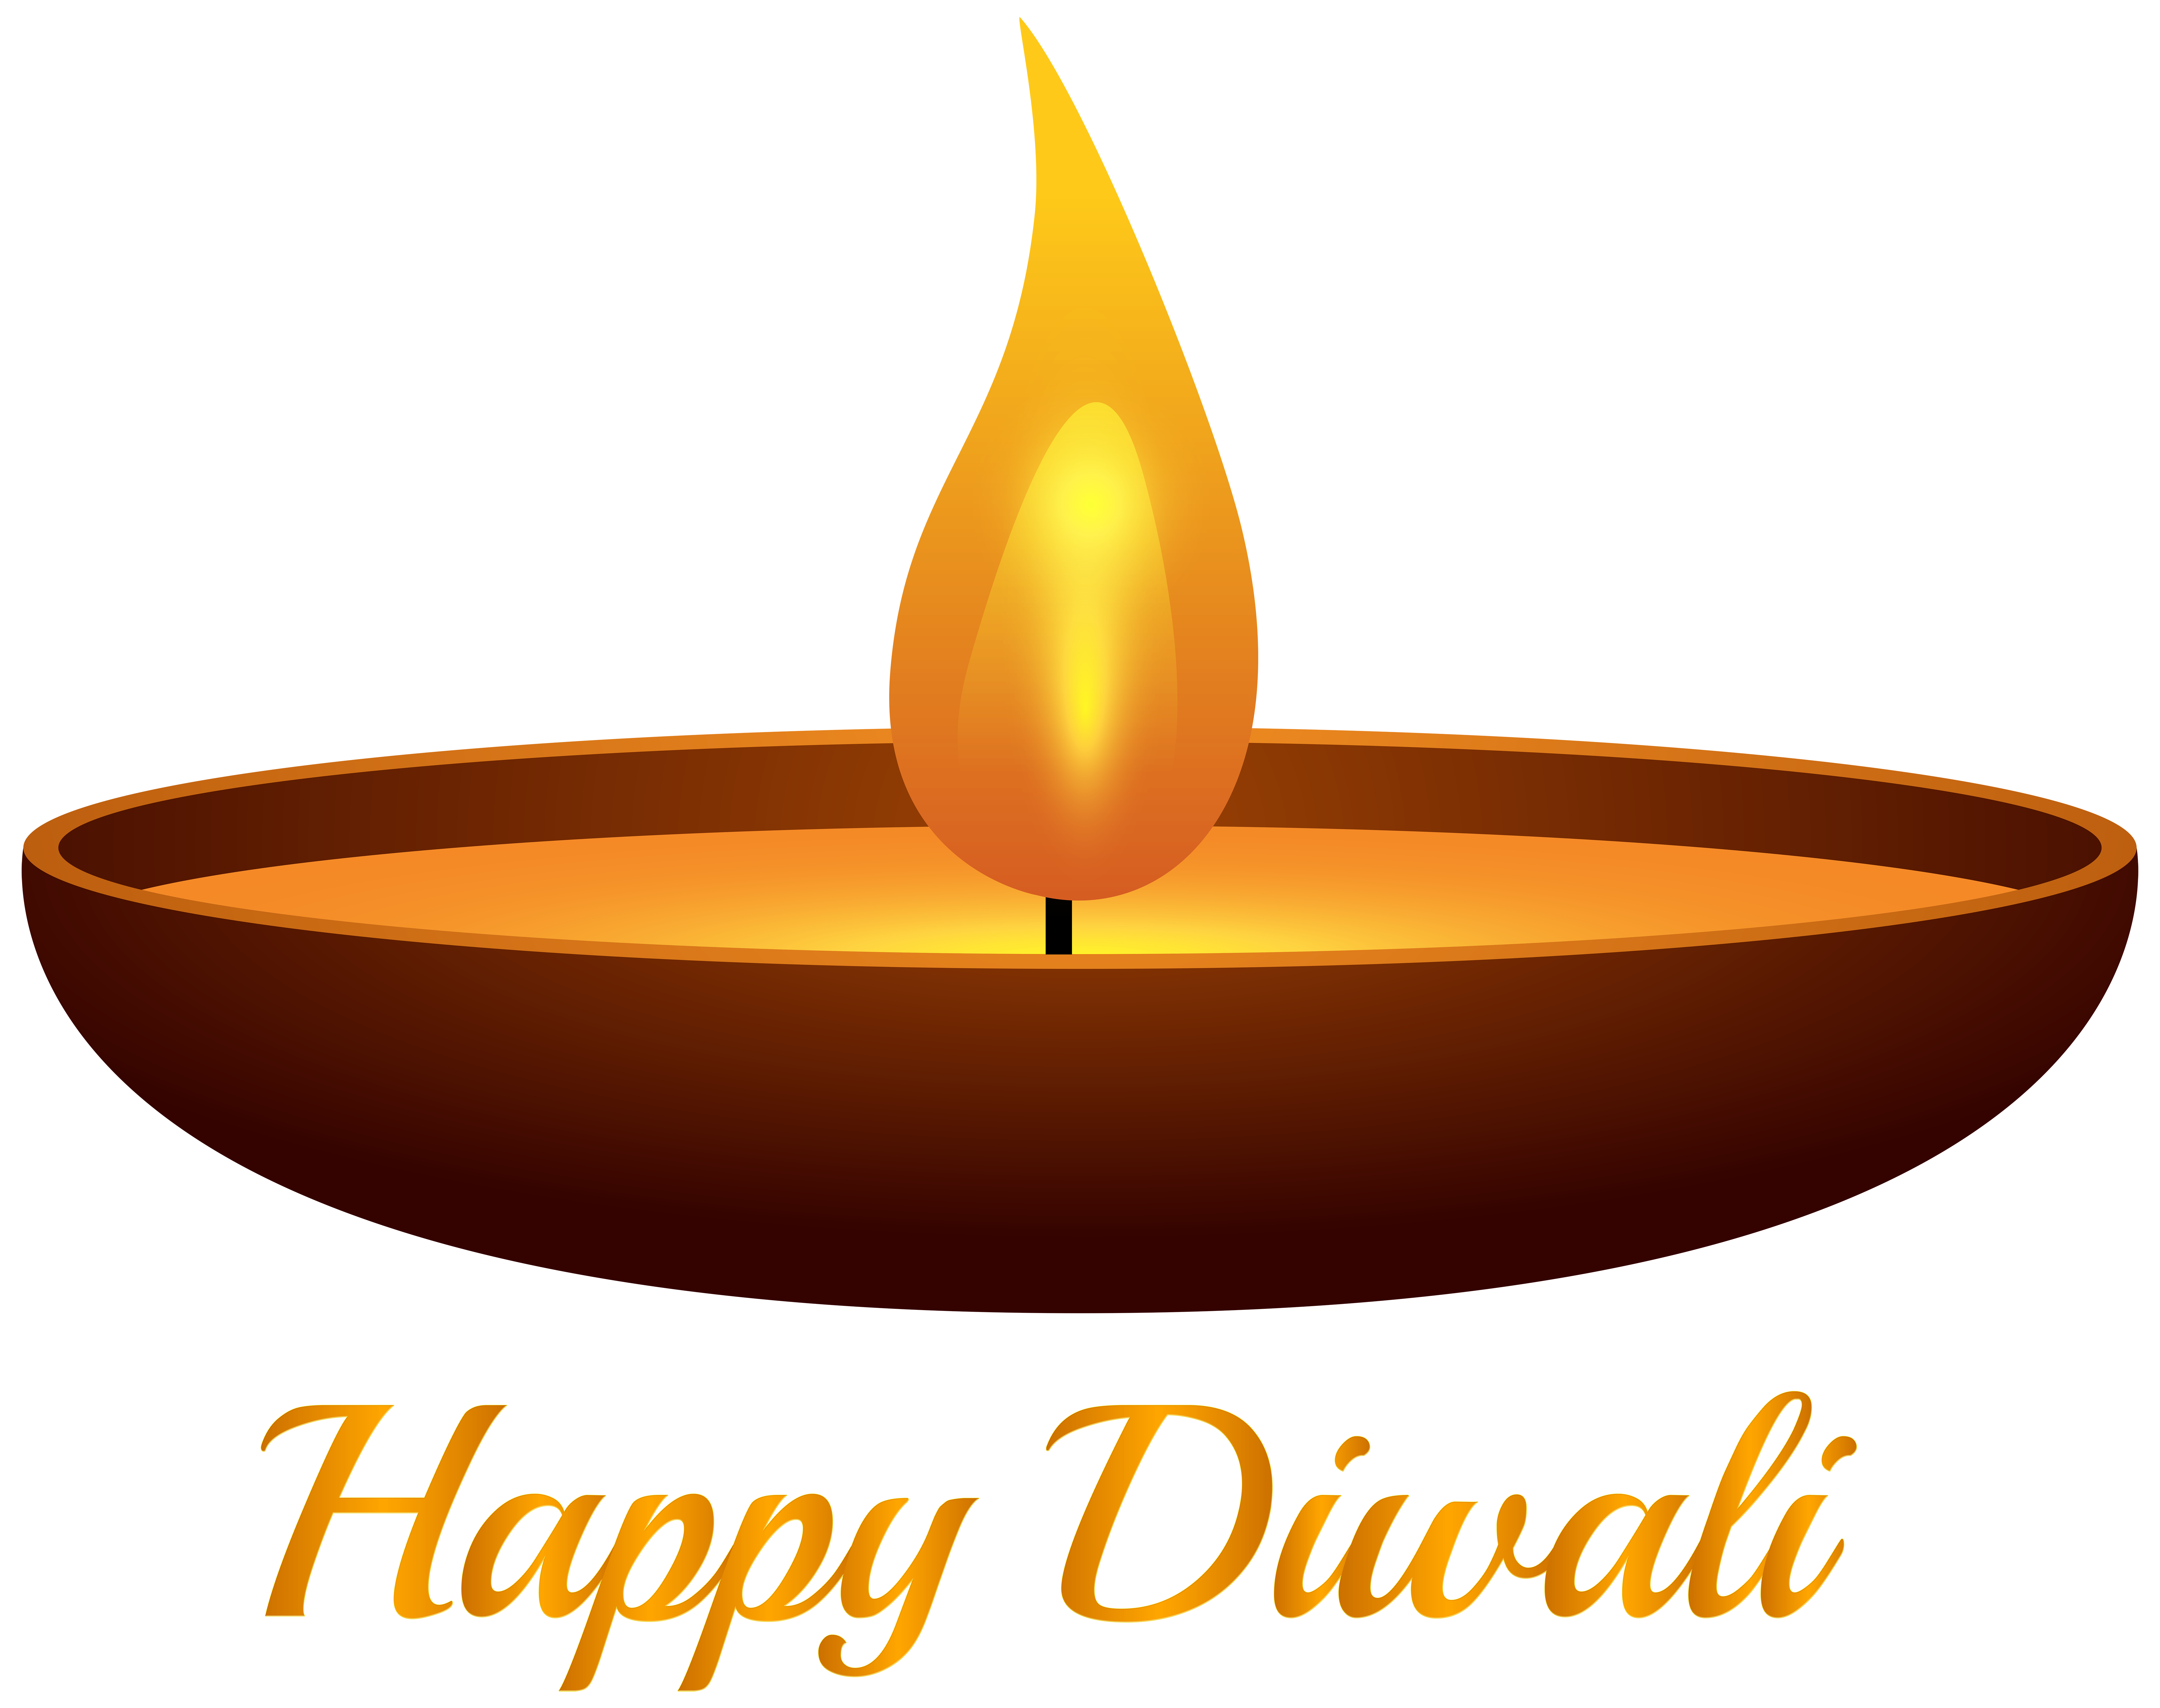 8000x6327 Happy Diwali Candle Png Clip Art Imageu200b Gallery Yopriceville